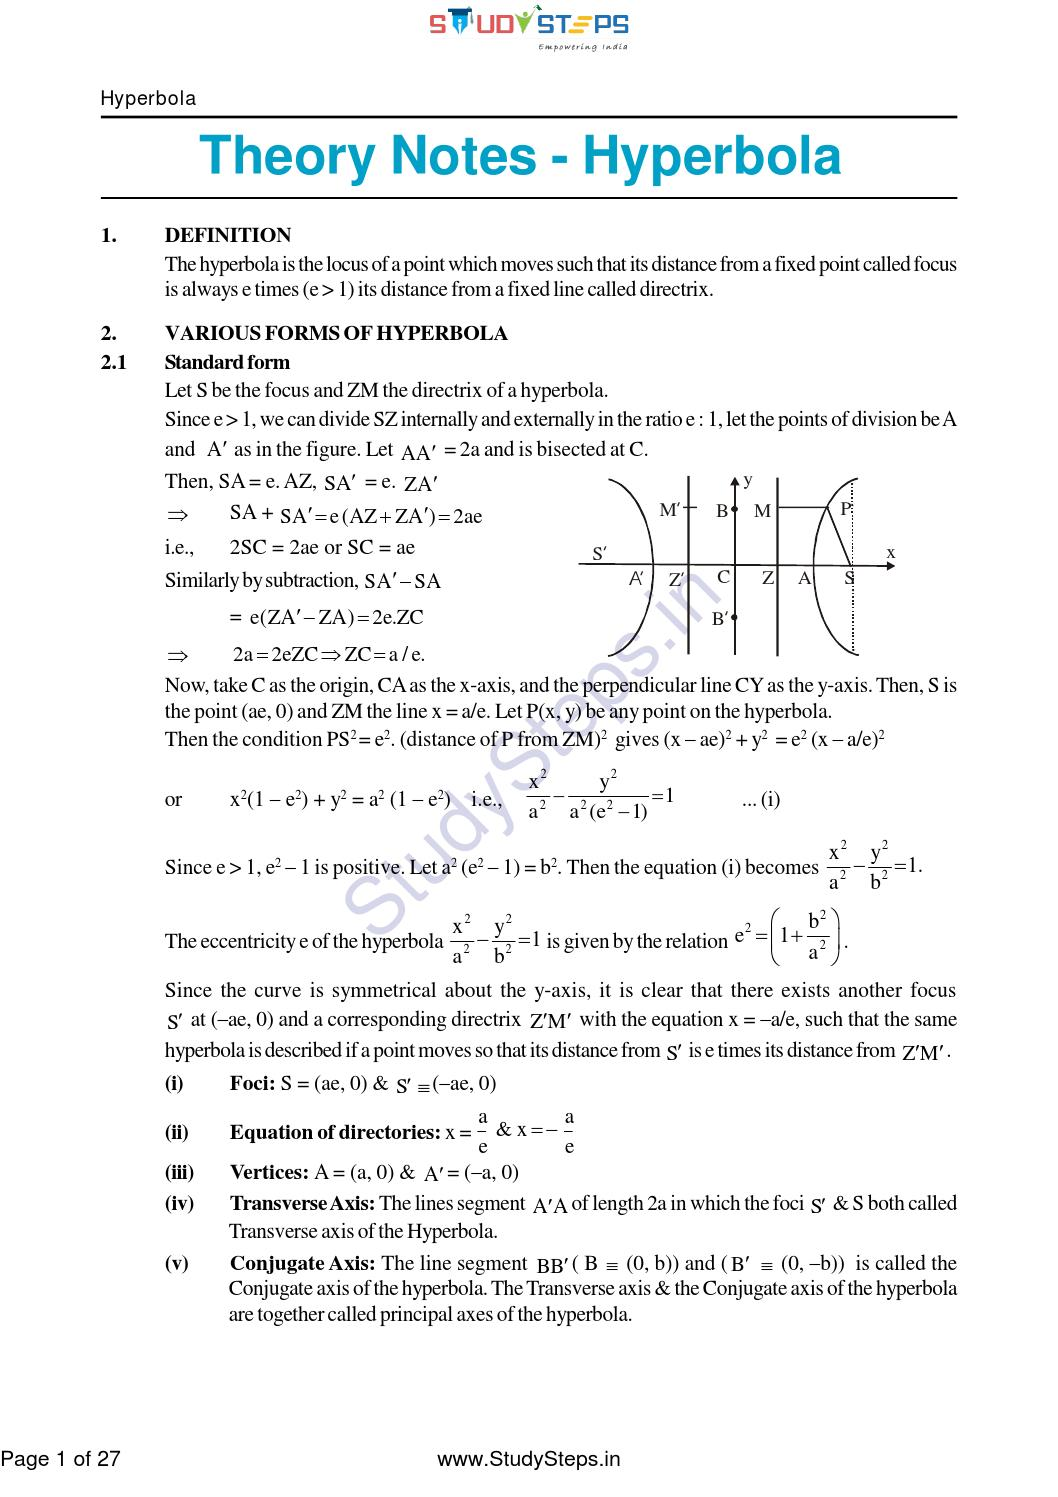 Maths hyperbola notes theory by studysteps issuu falaconquin